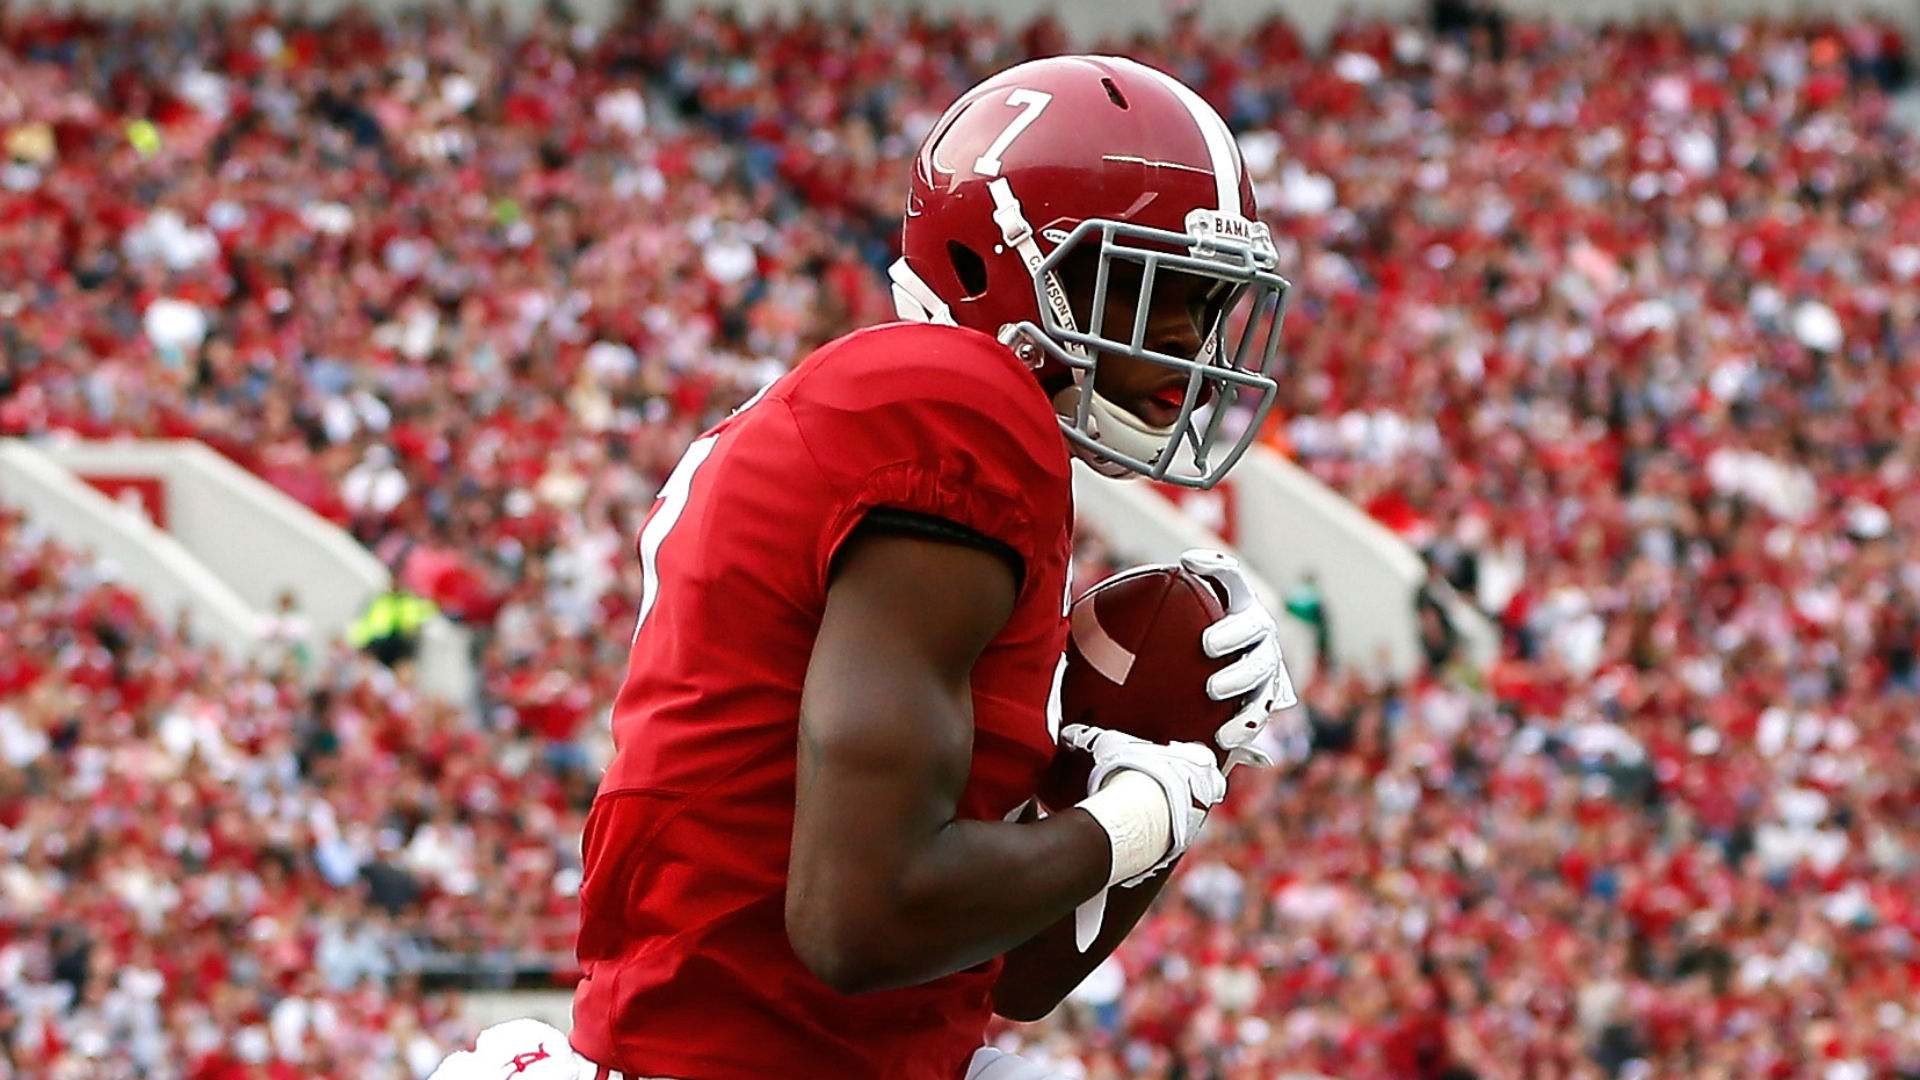 Report: Alabama WR Cam Sims tears ACL at practice   Sporting News